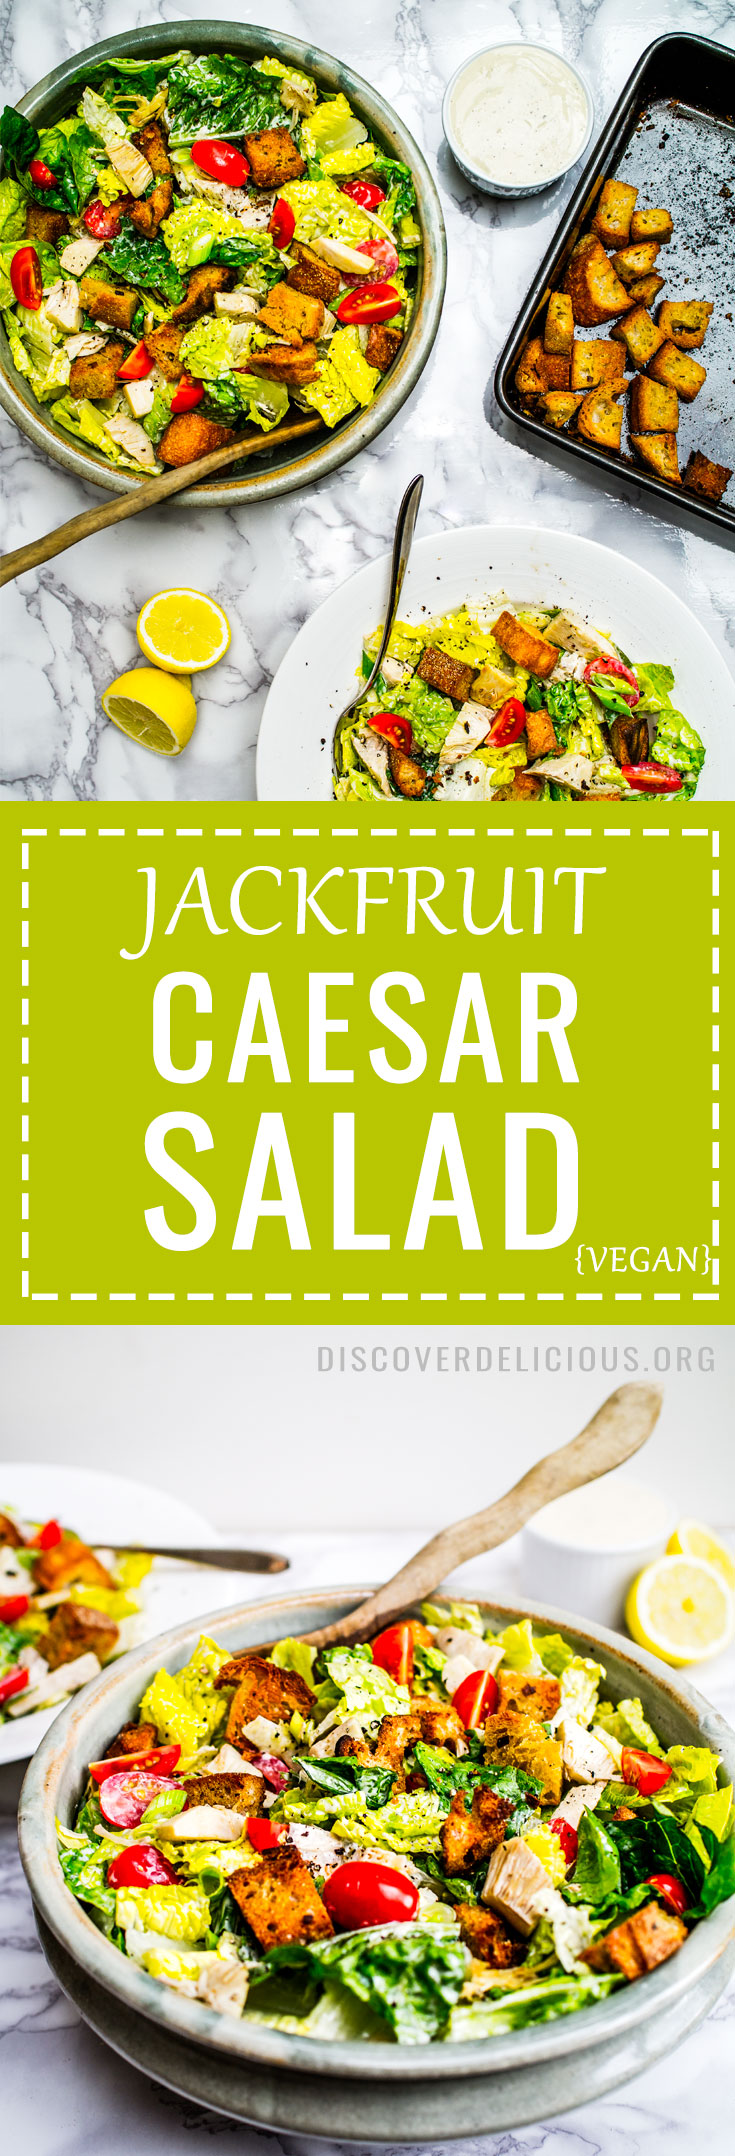 Jackfruit Caesar Salad [vegan]. A tangy, creamy, dressing over the meaty texture of jackfruit and crunch of roasted garlicky croutons. #vegan #healthy #recipe